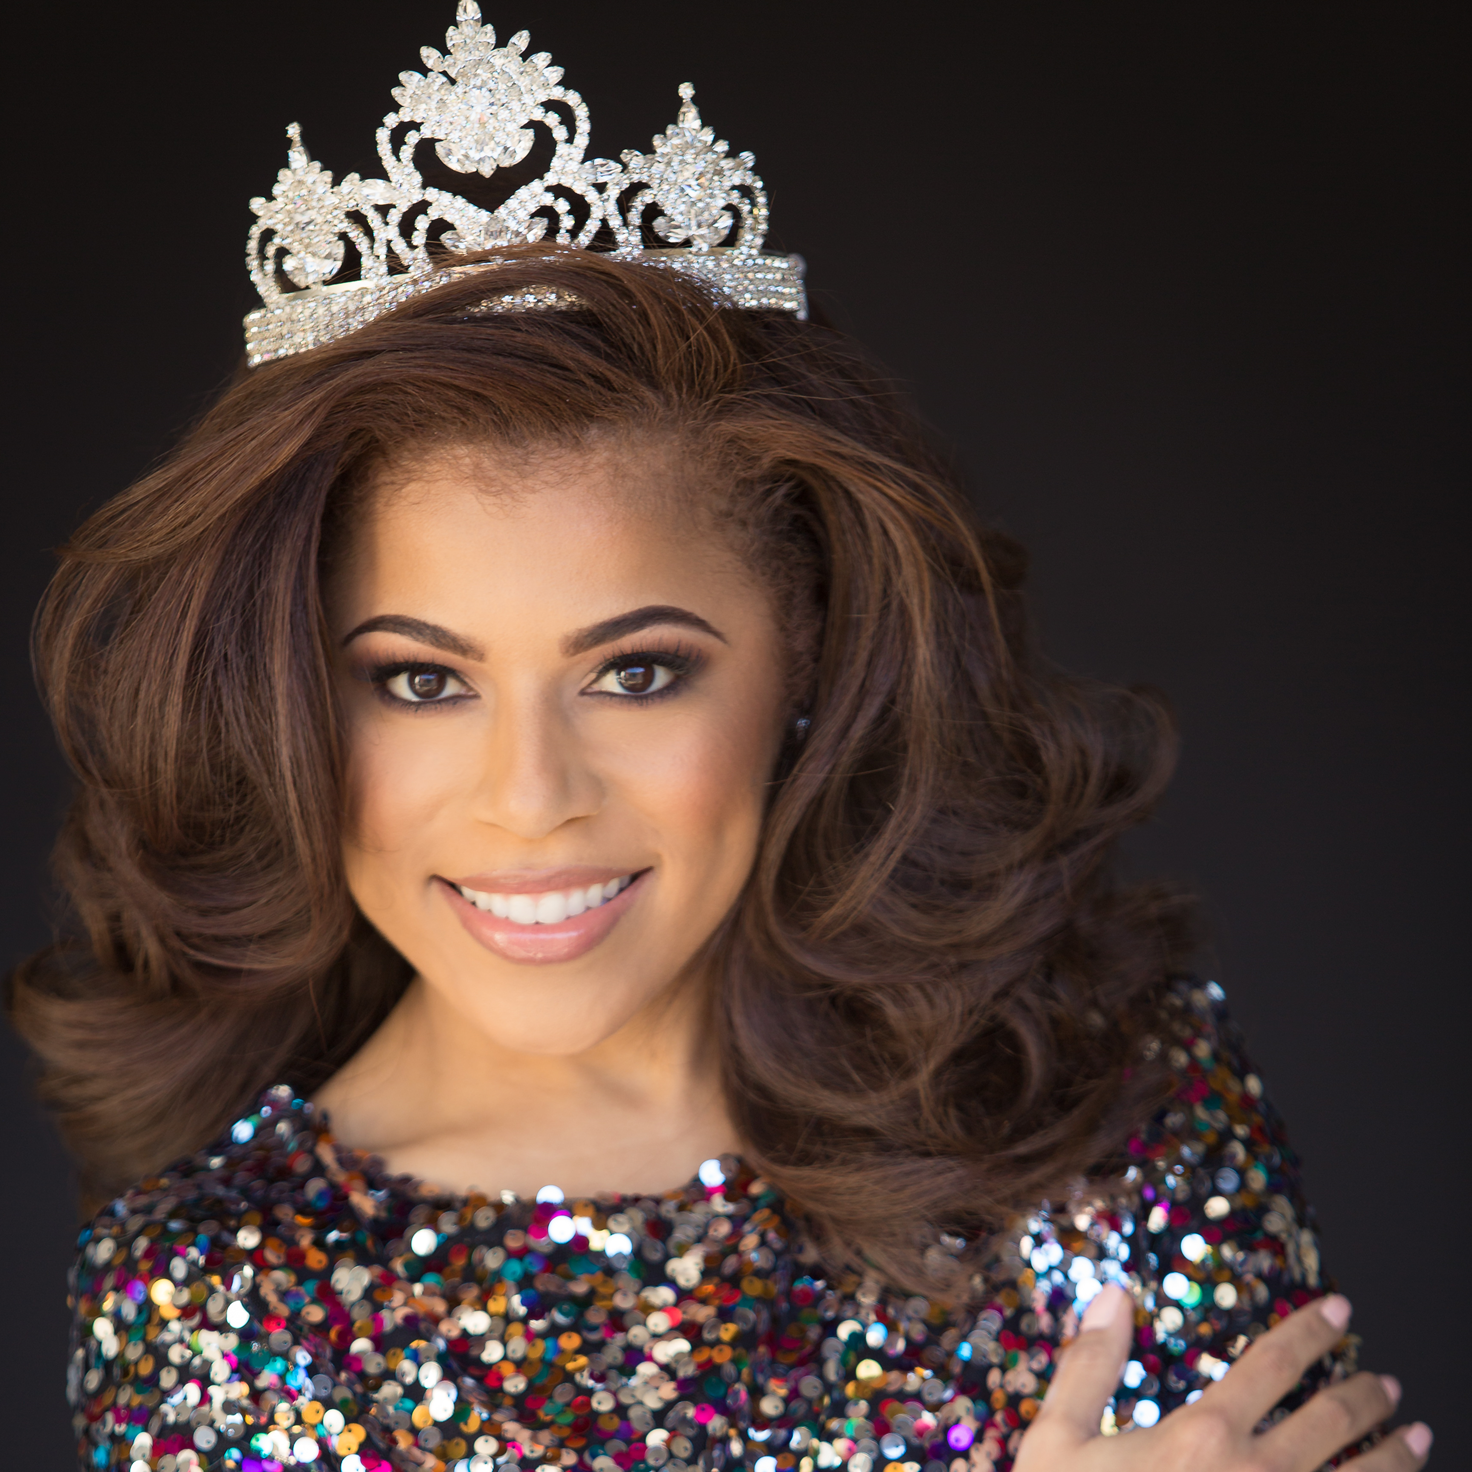 Mrs. North Carolina 2018 - Nichelle Sublett